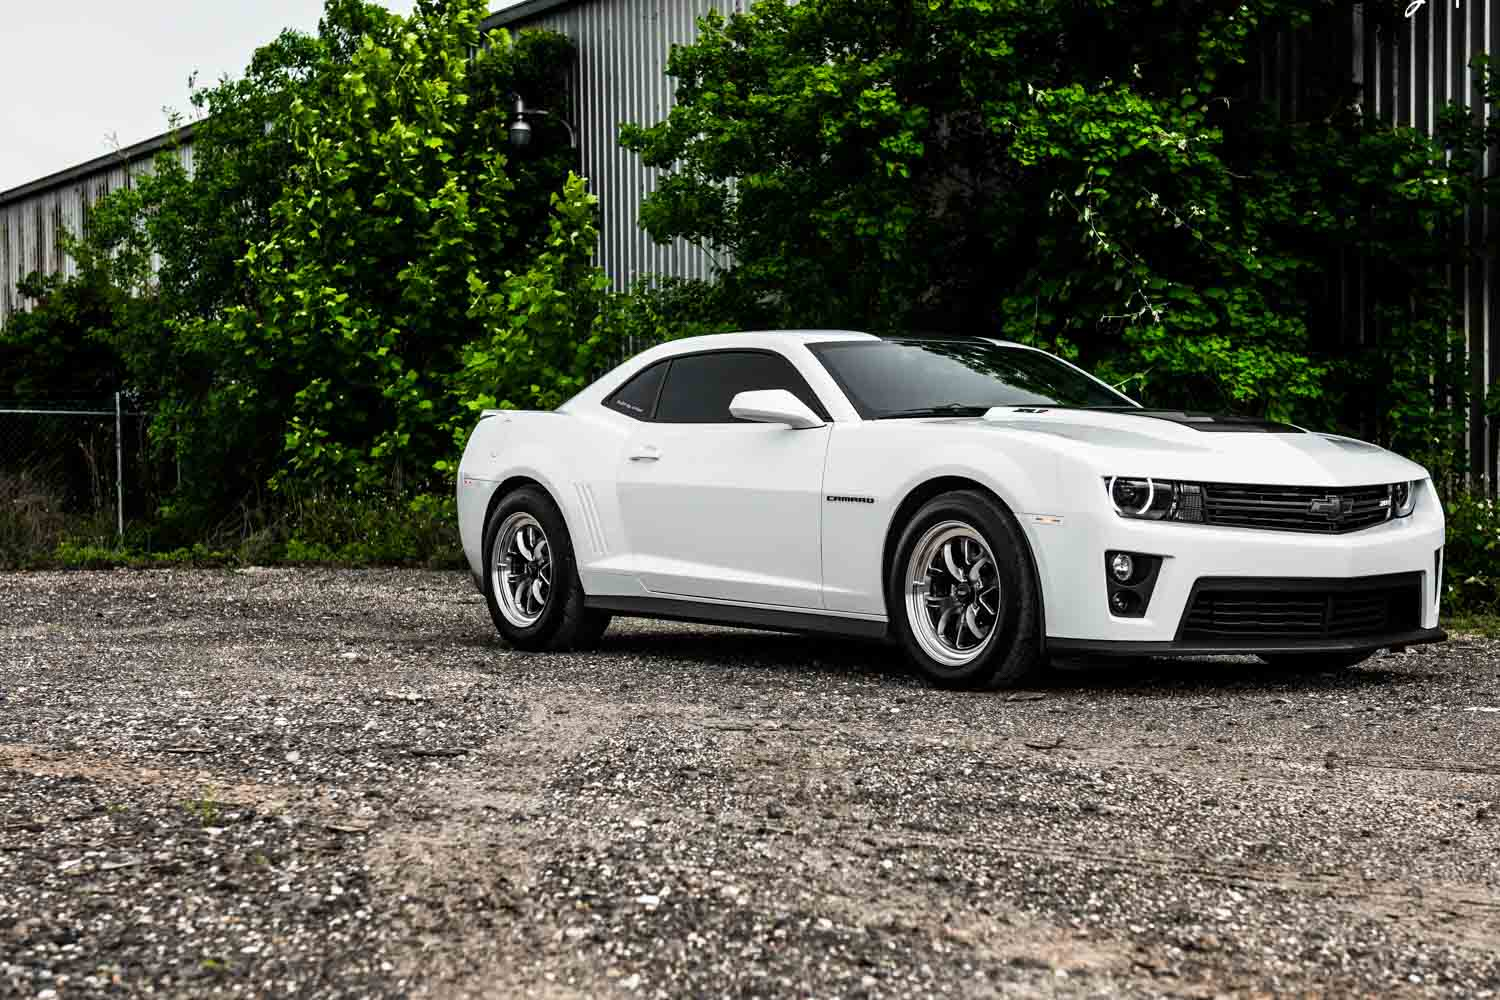 Chevy Zl1 S76 Weld Wheels